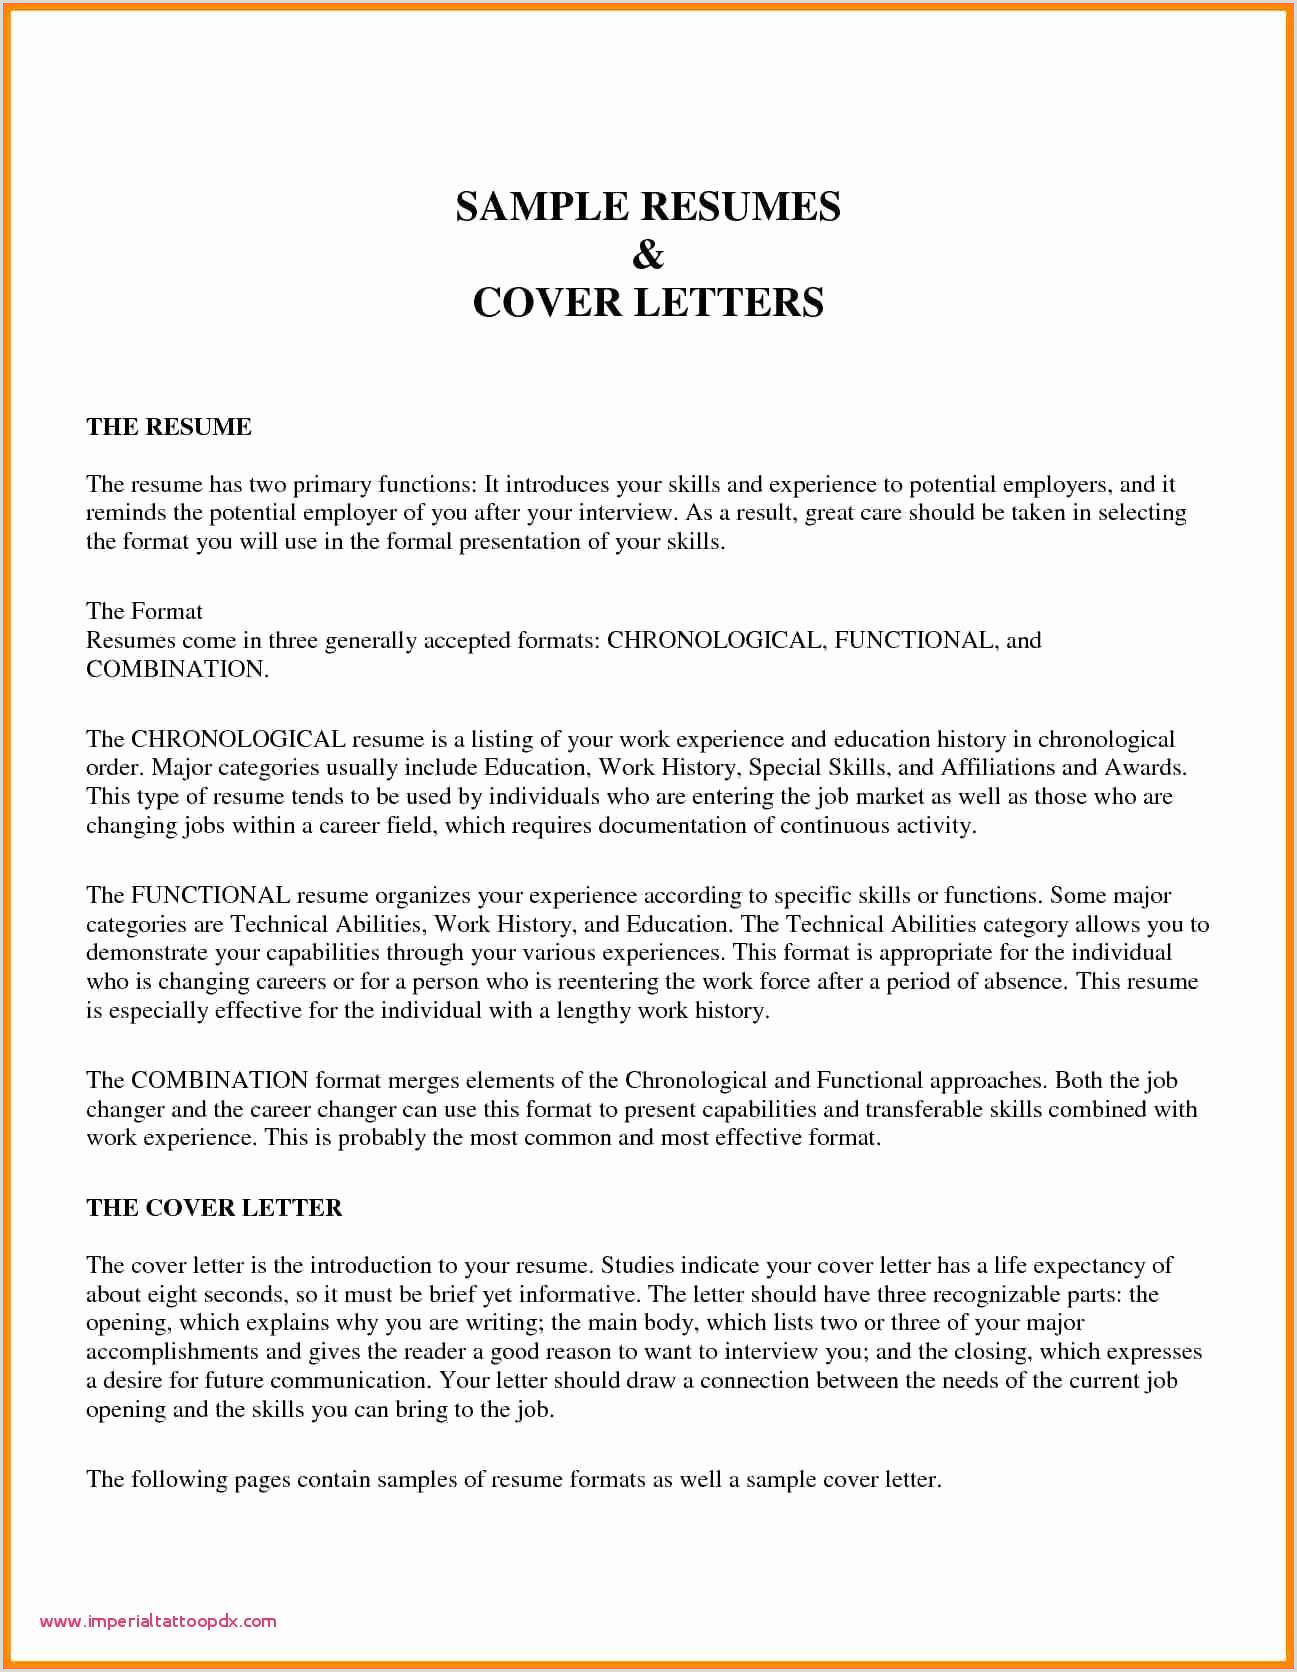 Strong Cover Letter Sample Whats A Good Cover Letter for A